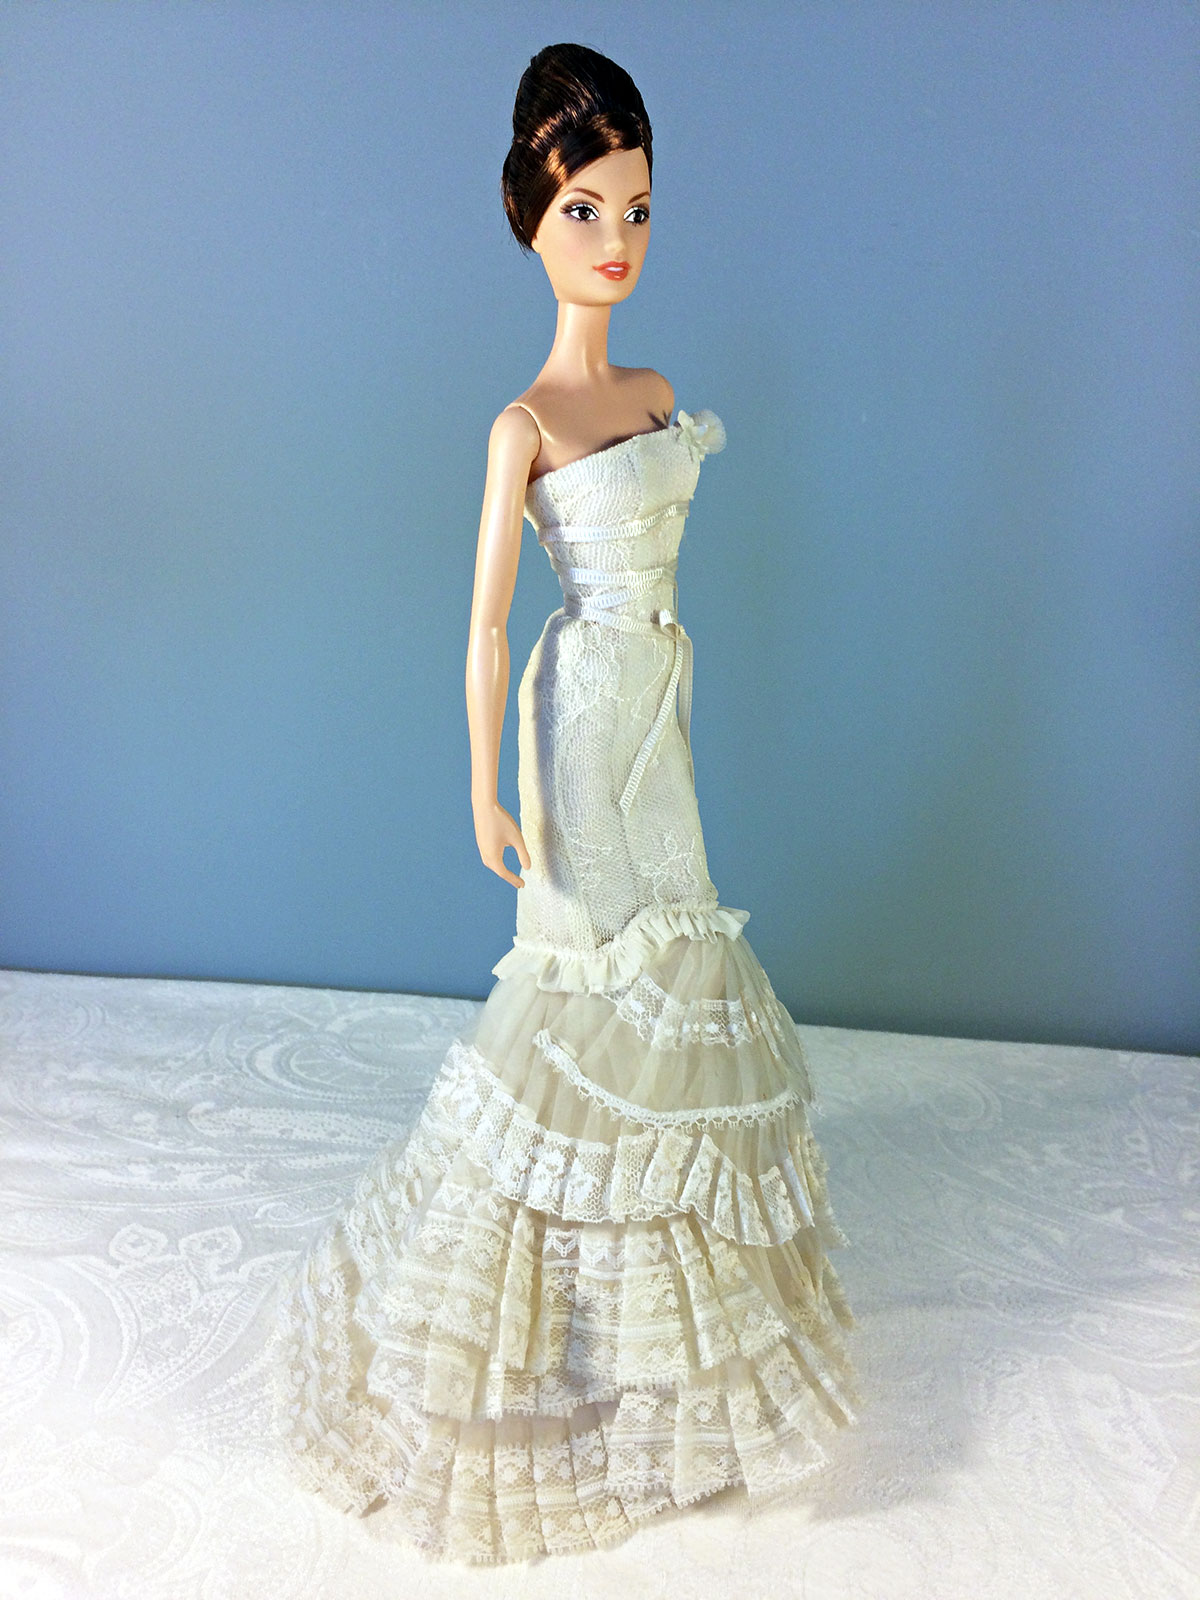 Vera Wang Bride: The Romanticist Barbie Doll - Perfectory Barbie Edition